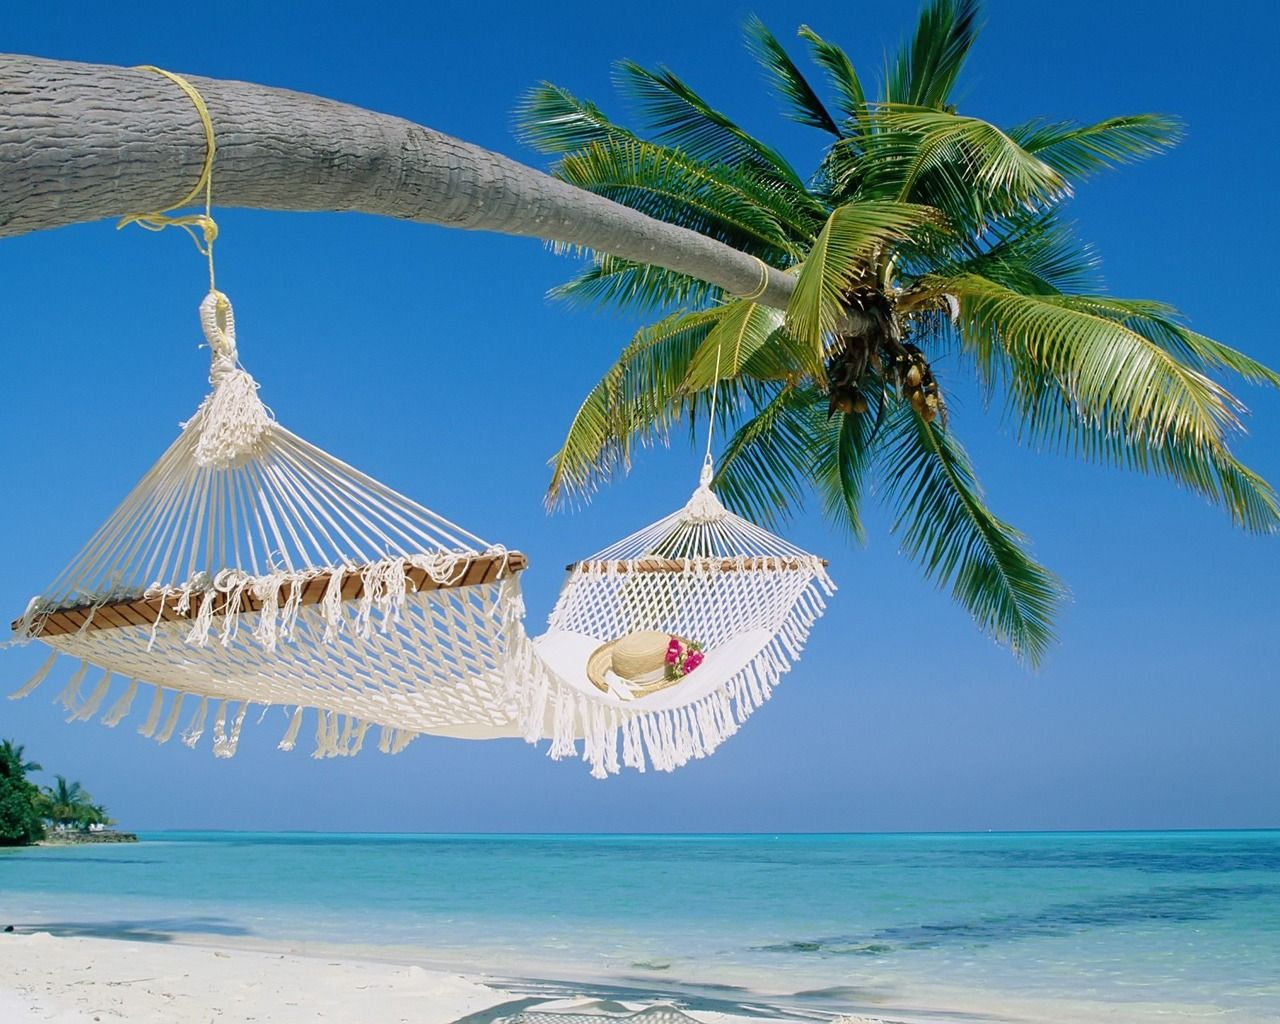 Hammocks on the beach - Find This Pin And More On The Good Life Hammock On The Beach